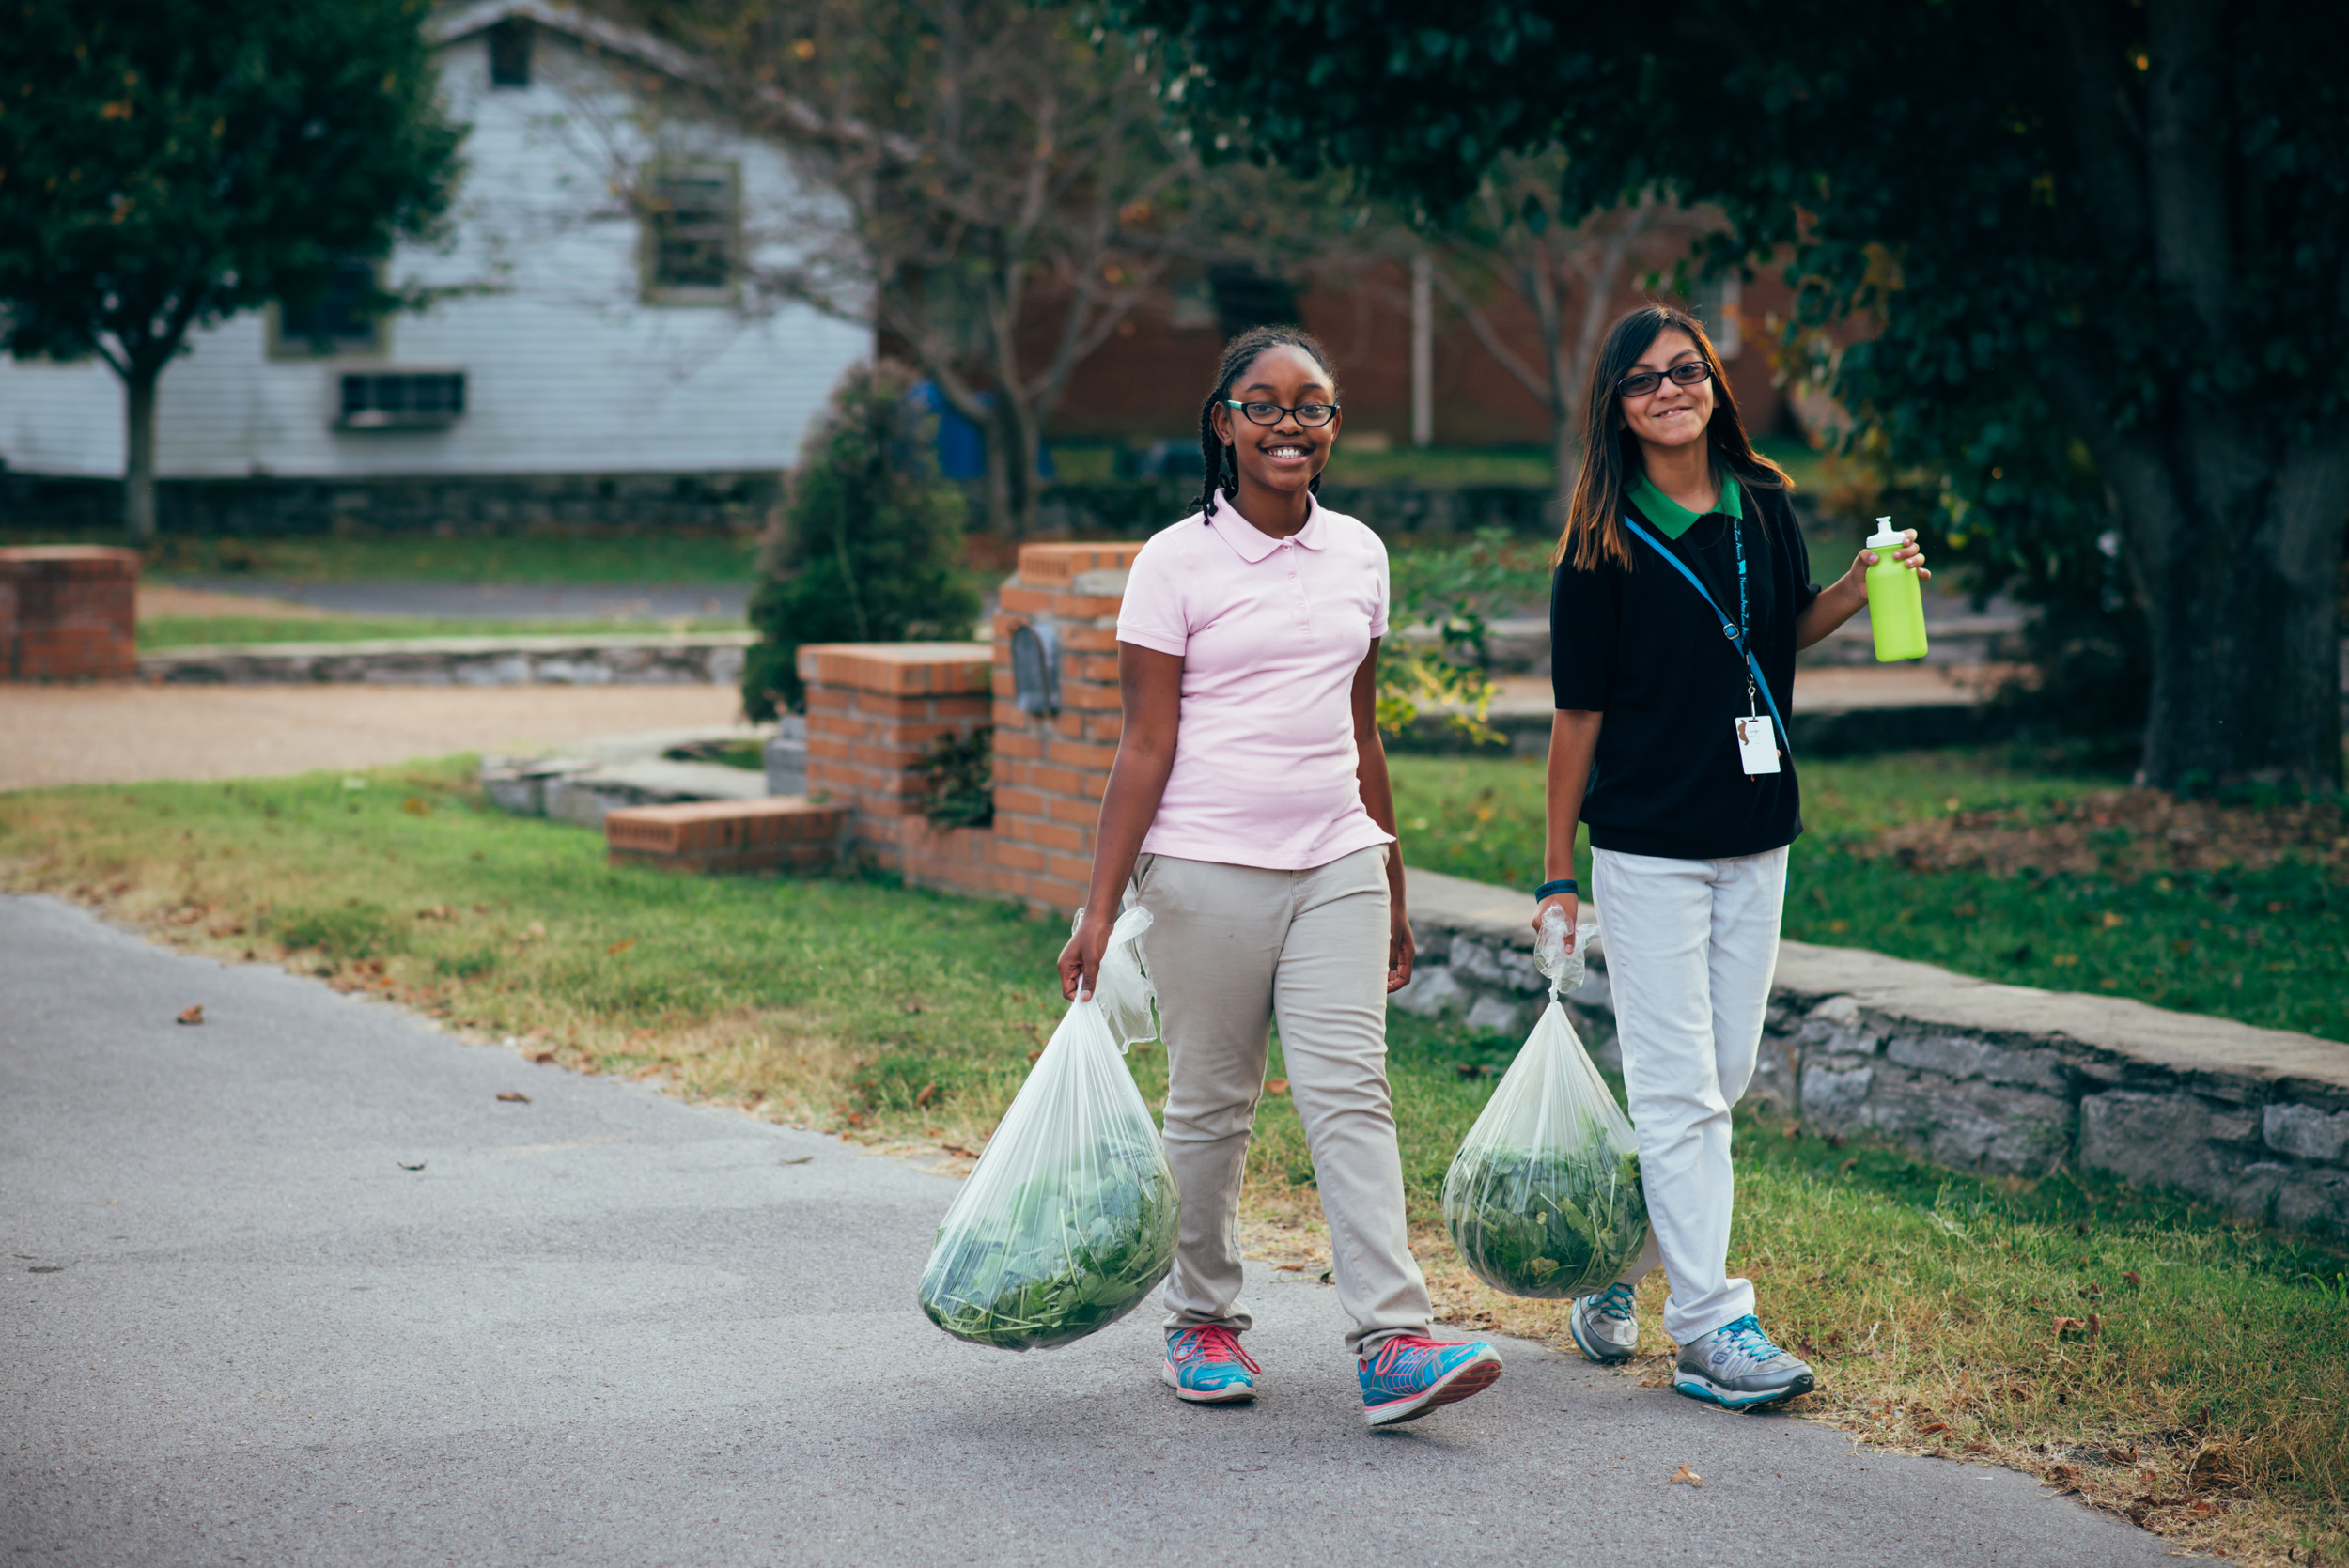 Tanayia and Arlette deliver vegetables freshly harvested from Hopewell Gardens to widows within the Hopewell neighborhood. These two girls developed a wonderful friendship over the course of the semester.